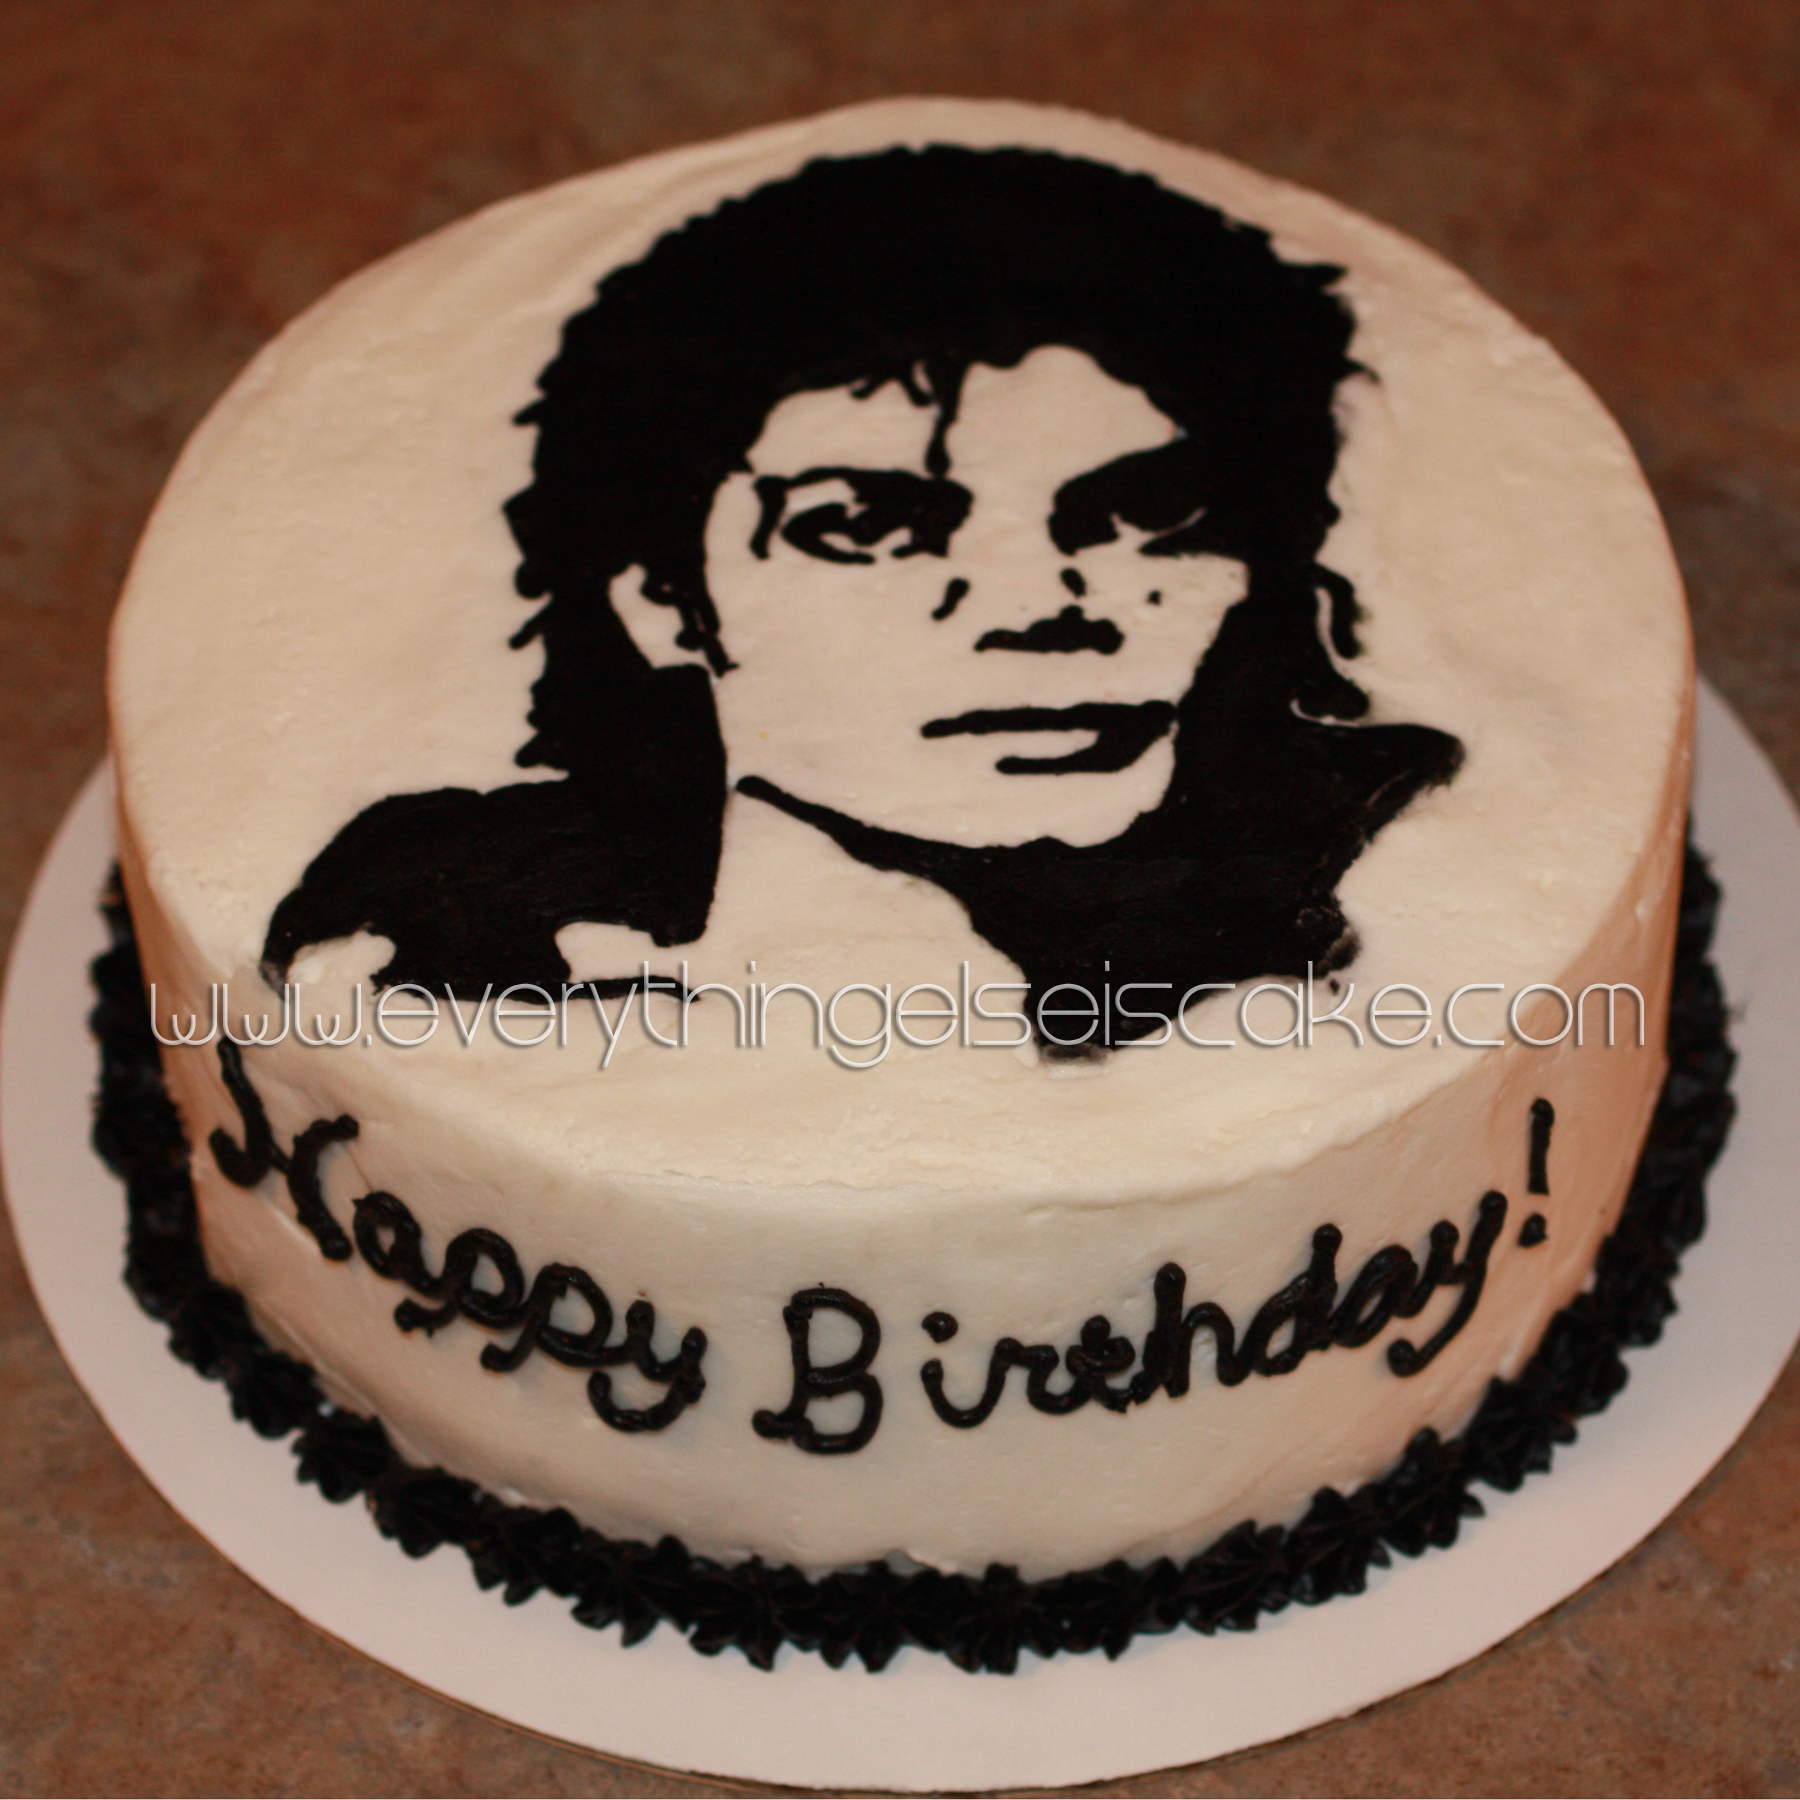 Birthday Cake Images Michael : The Michael Jackson Inspired Birthday Cakes & Pastries ...